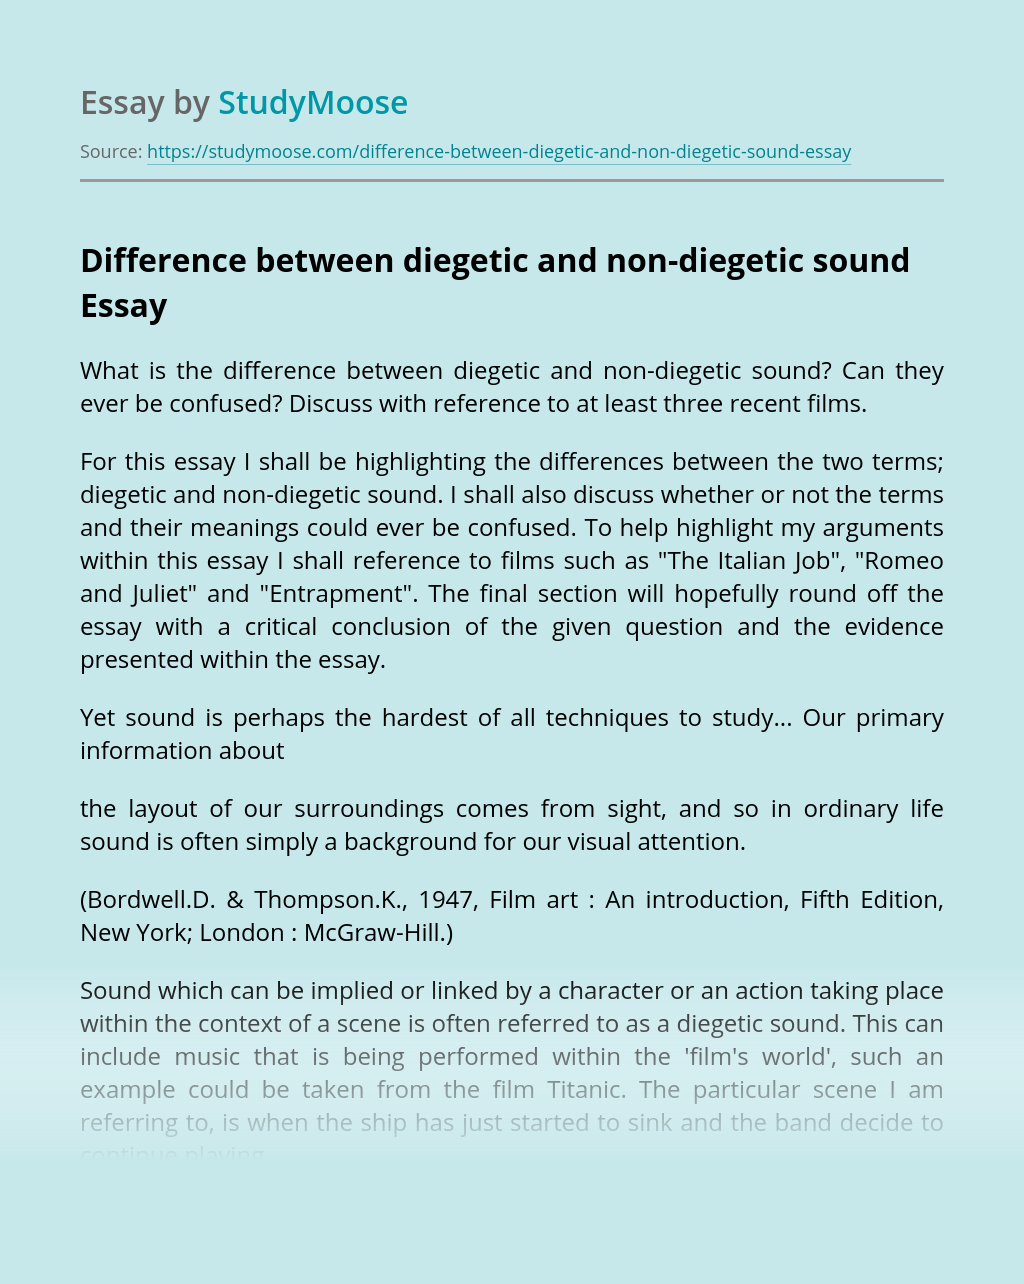 Difference between diegetic and non-diegetic sound